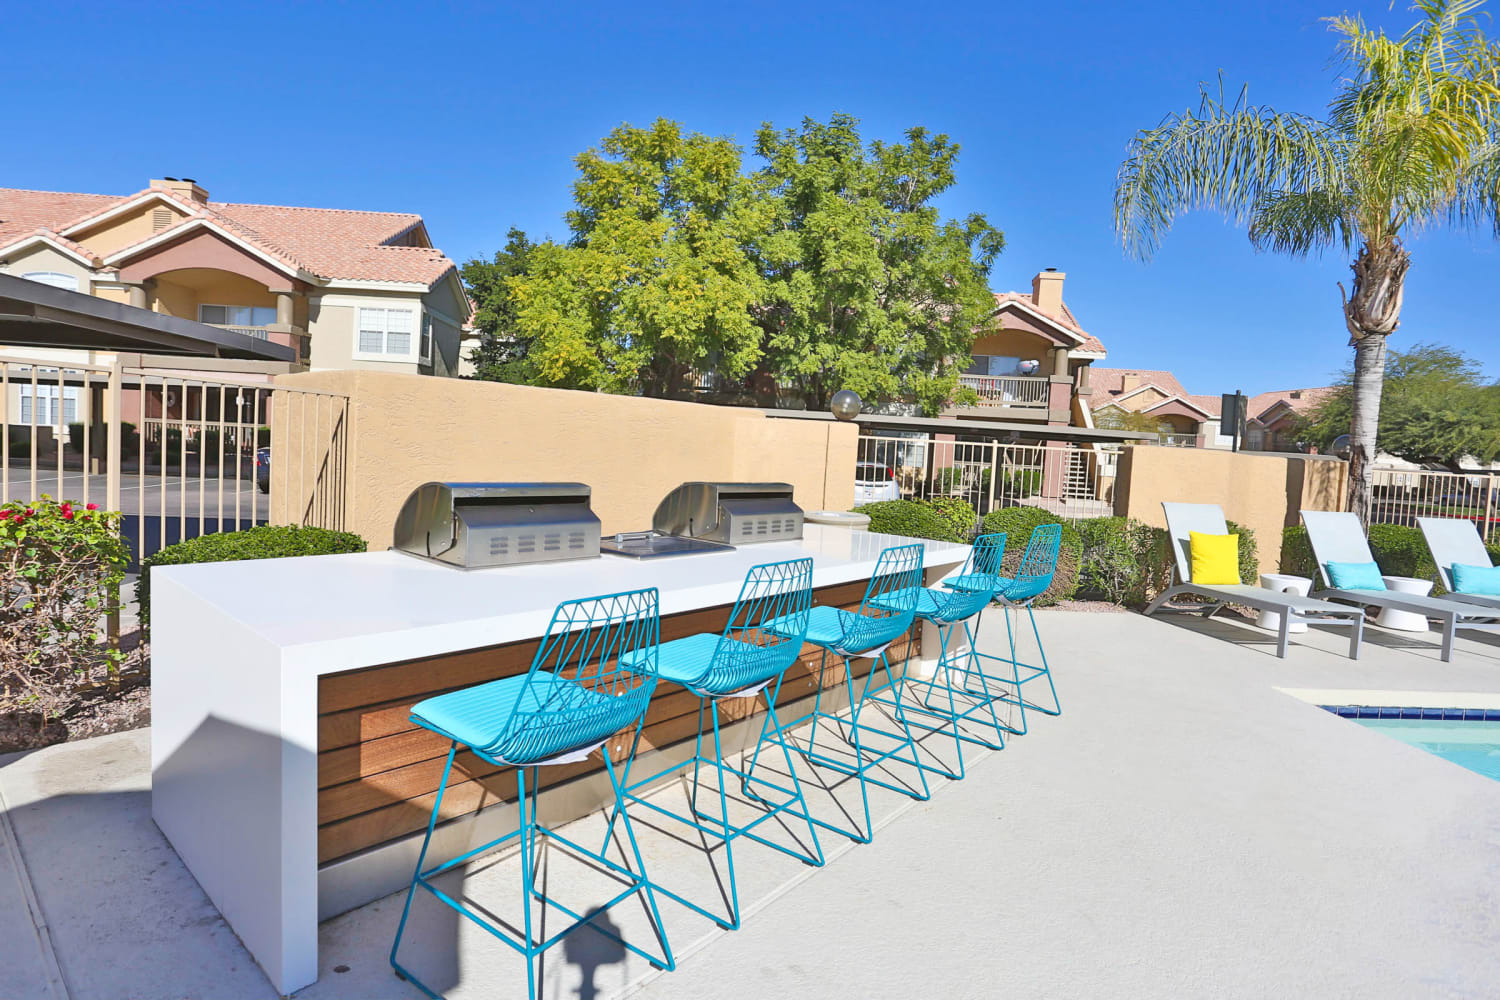 Barbecue bar area near the pool at Sonoran Vista Apartments in Scottsdale, Arizona